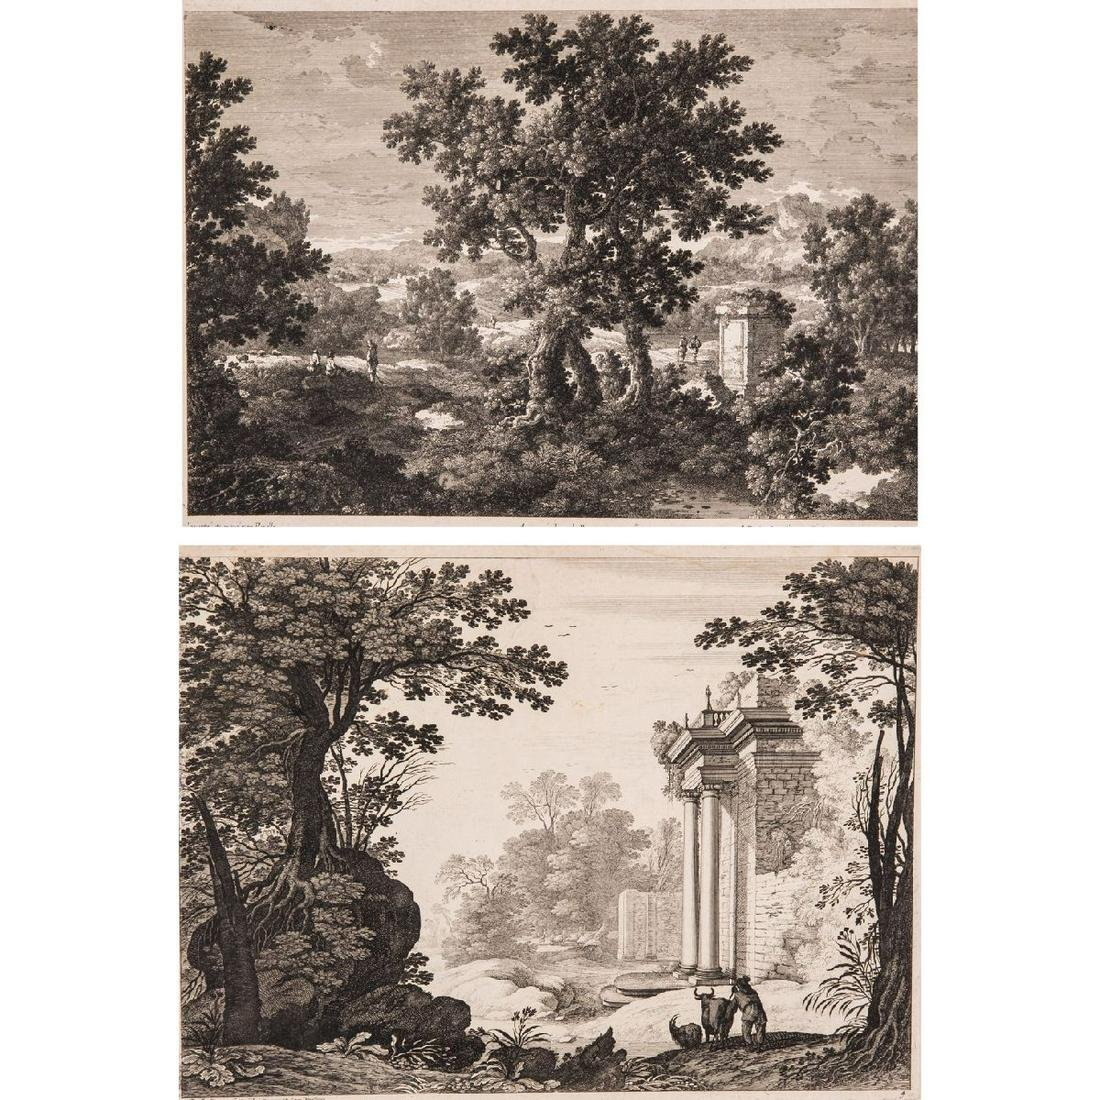 Gabriel Perelle (French, 1603-1675) Two Forest